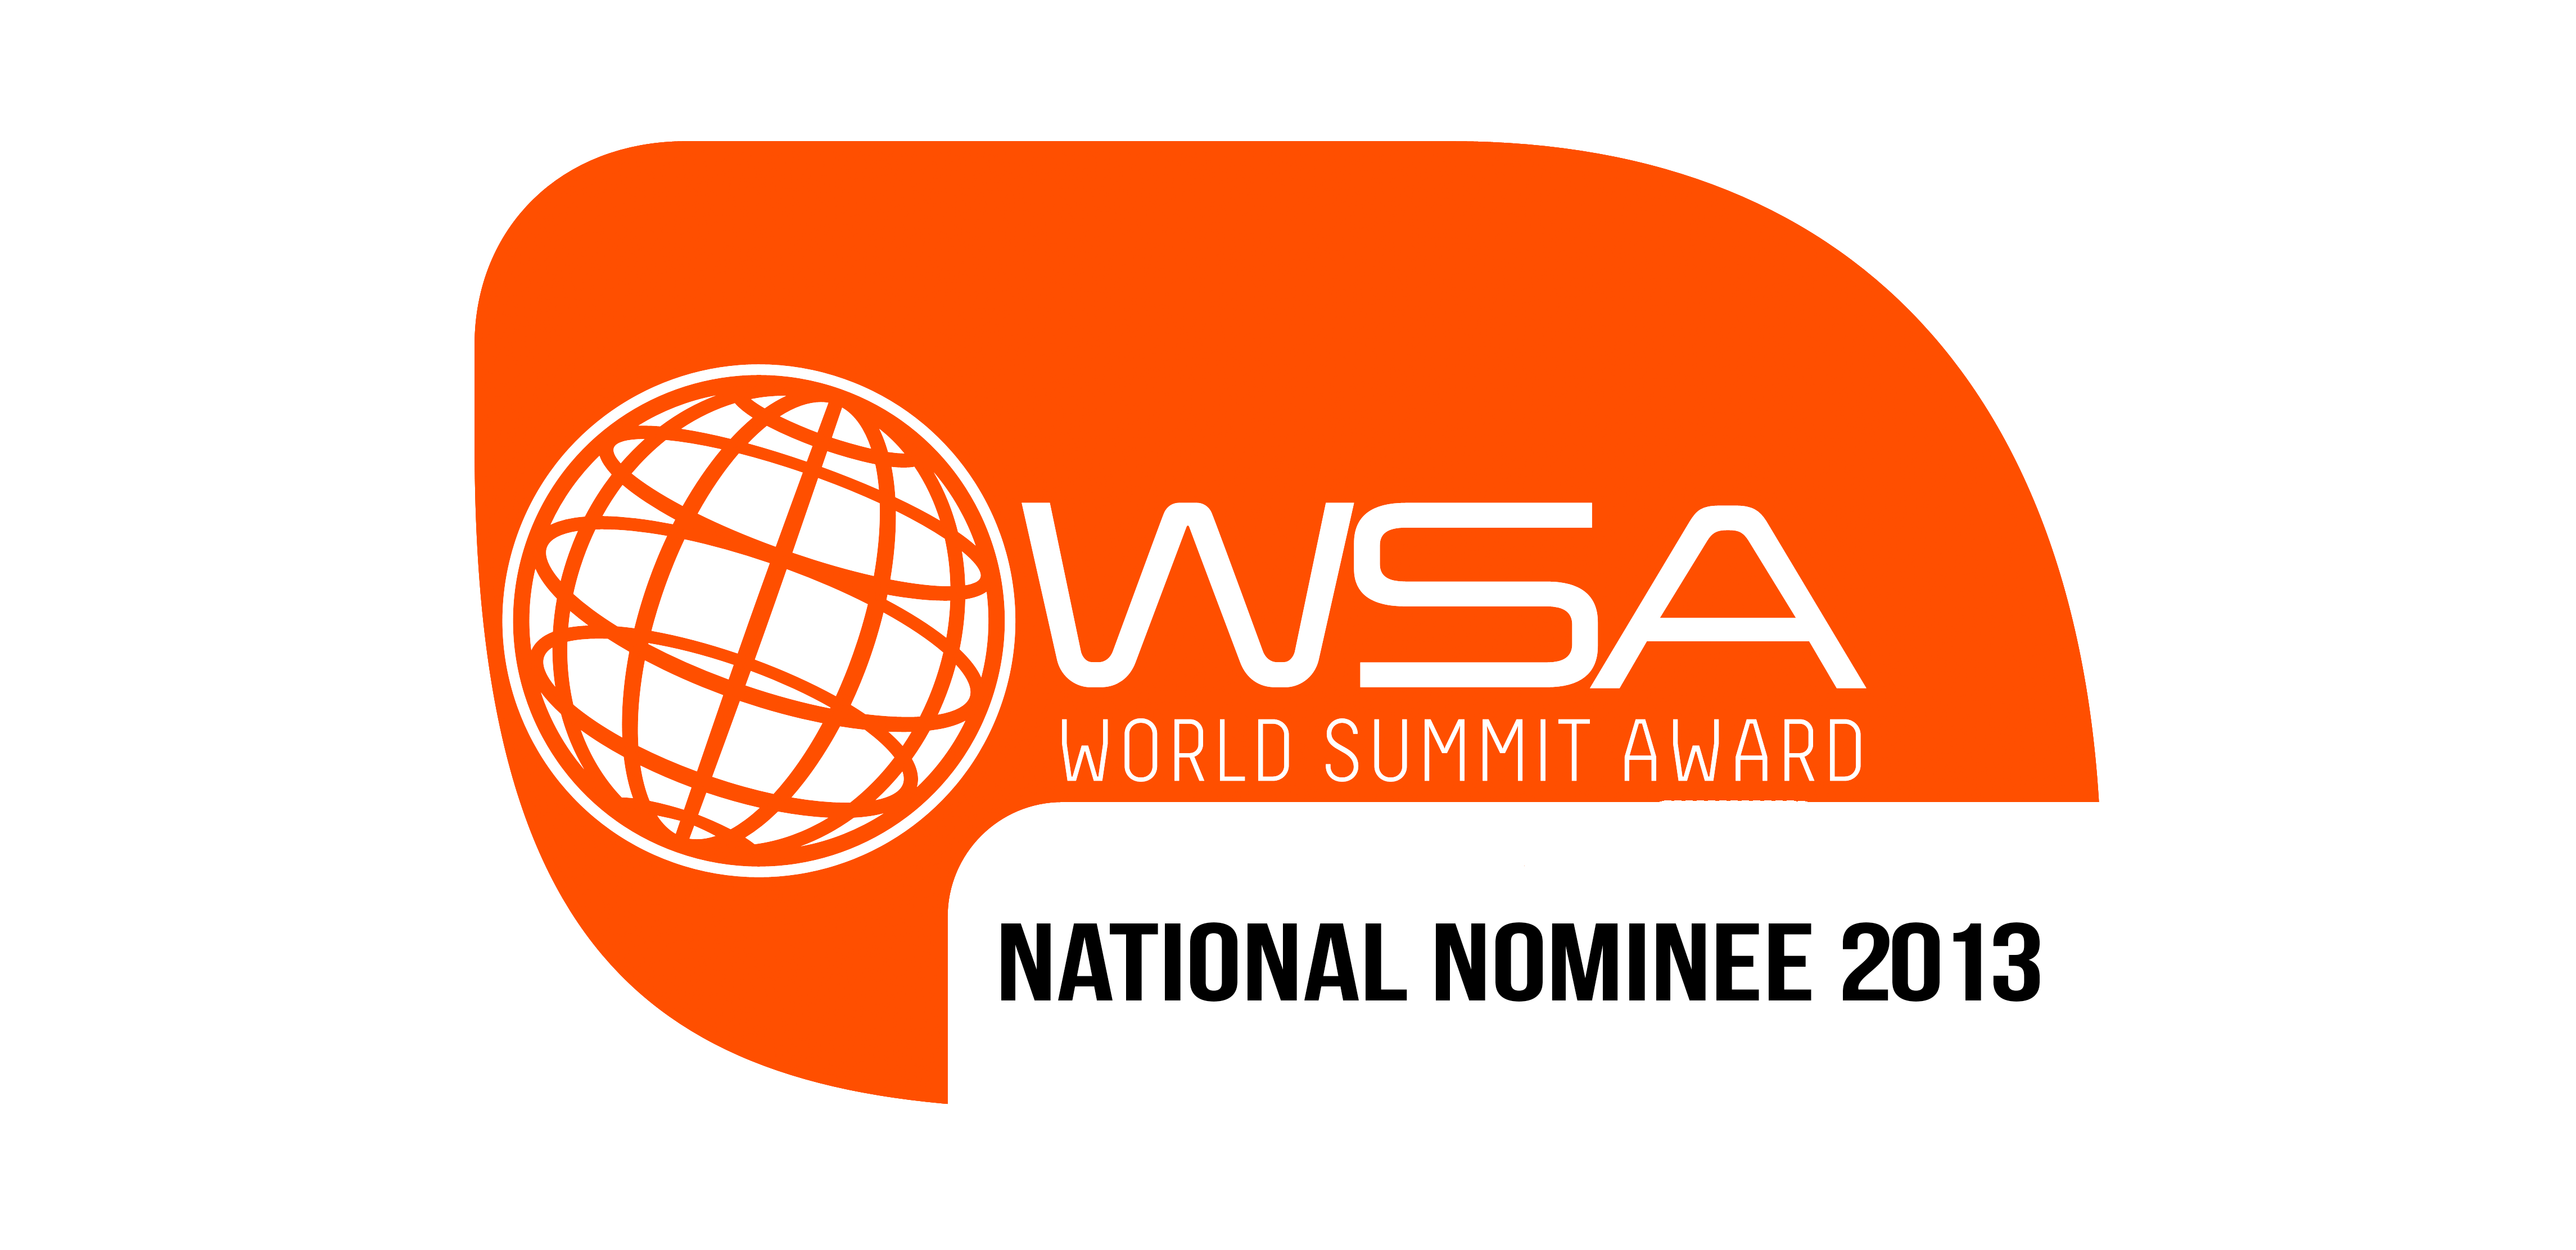 wsa seal 2013 nominee